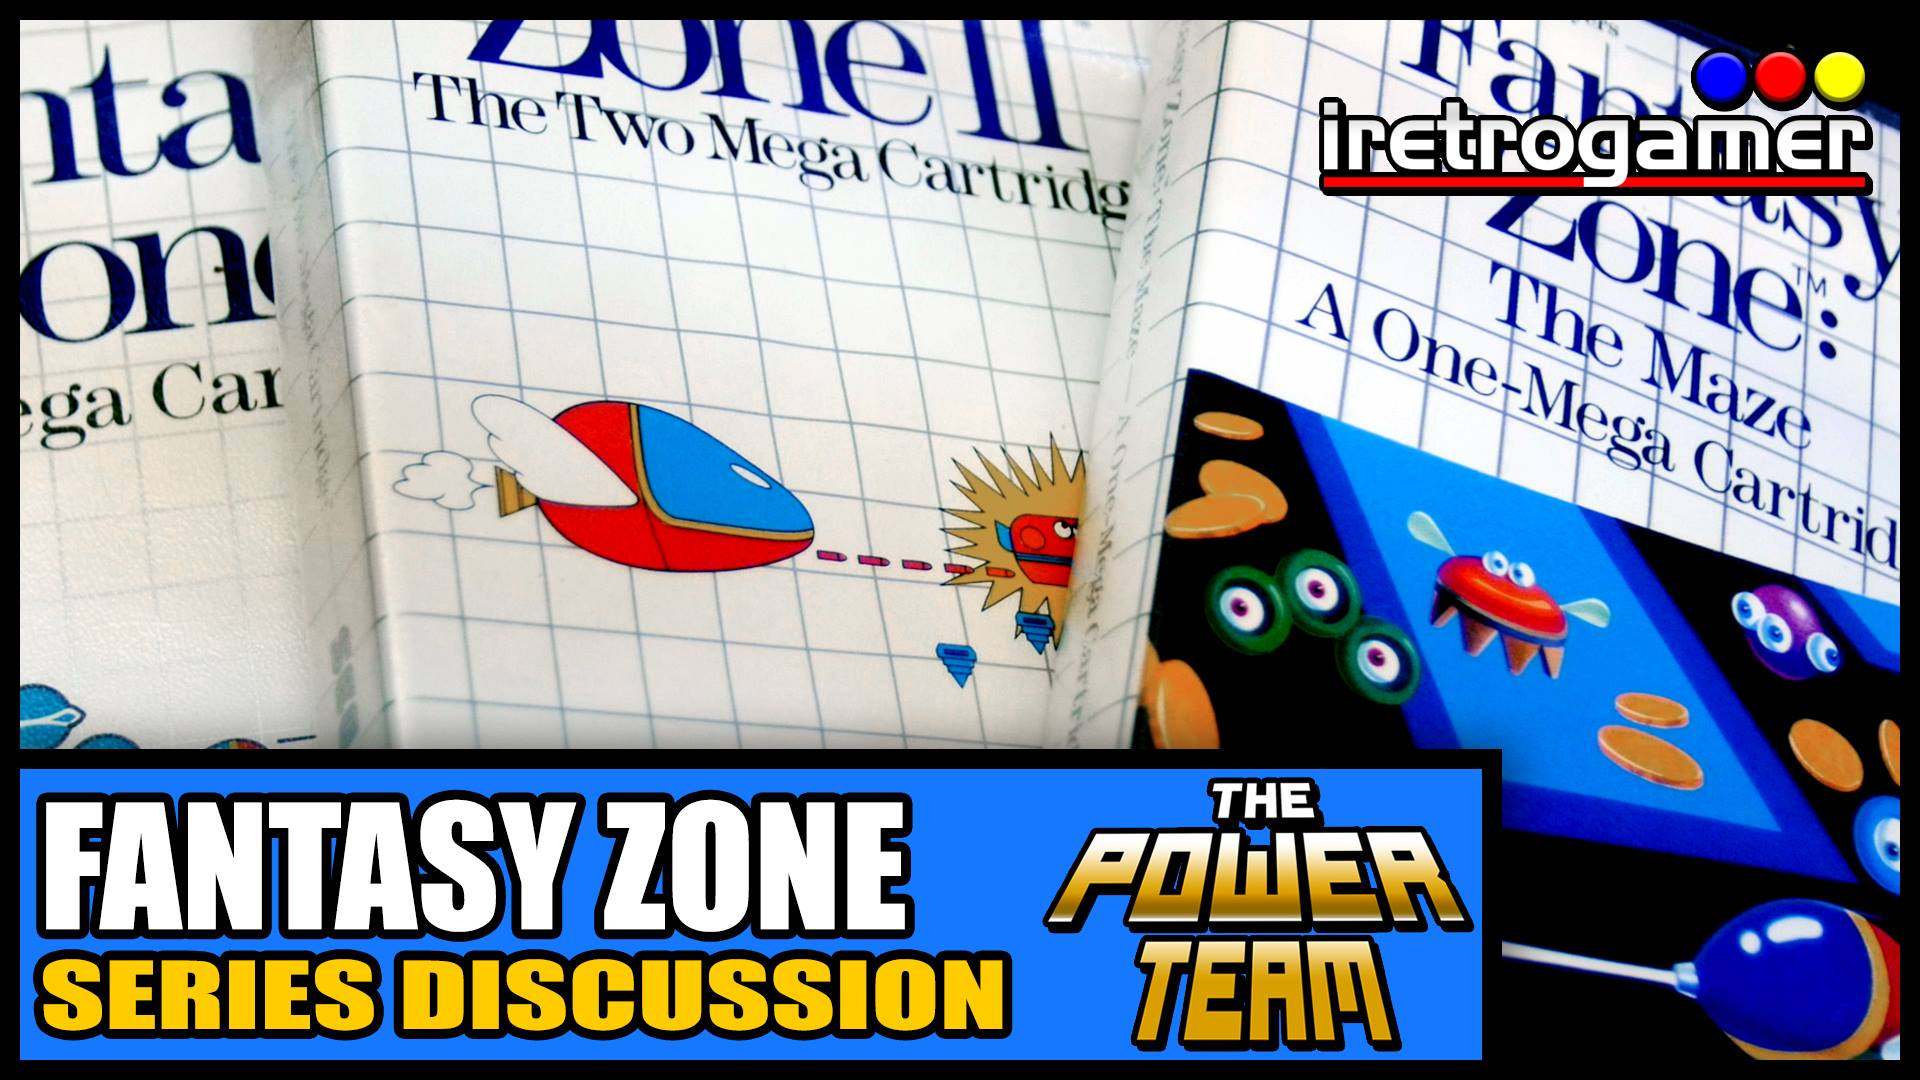 The Power Team takes a look at the Fantasy Zone series